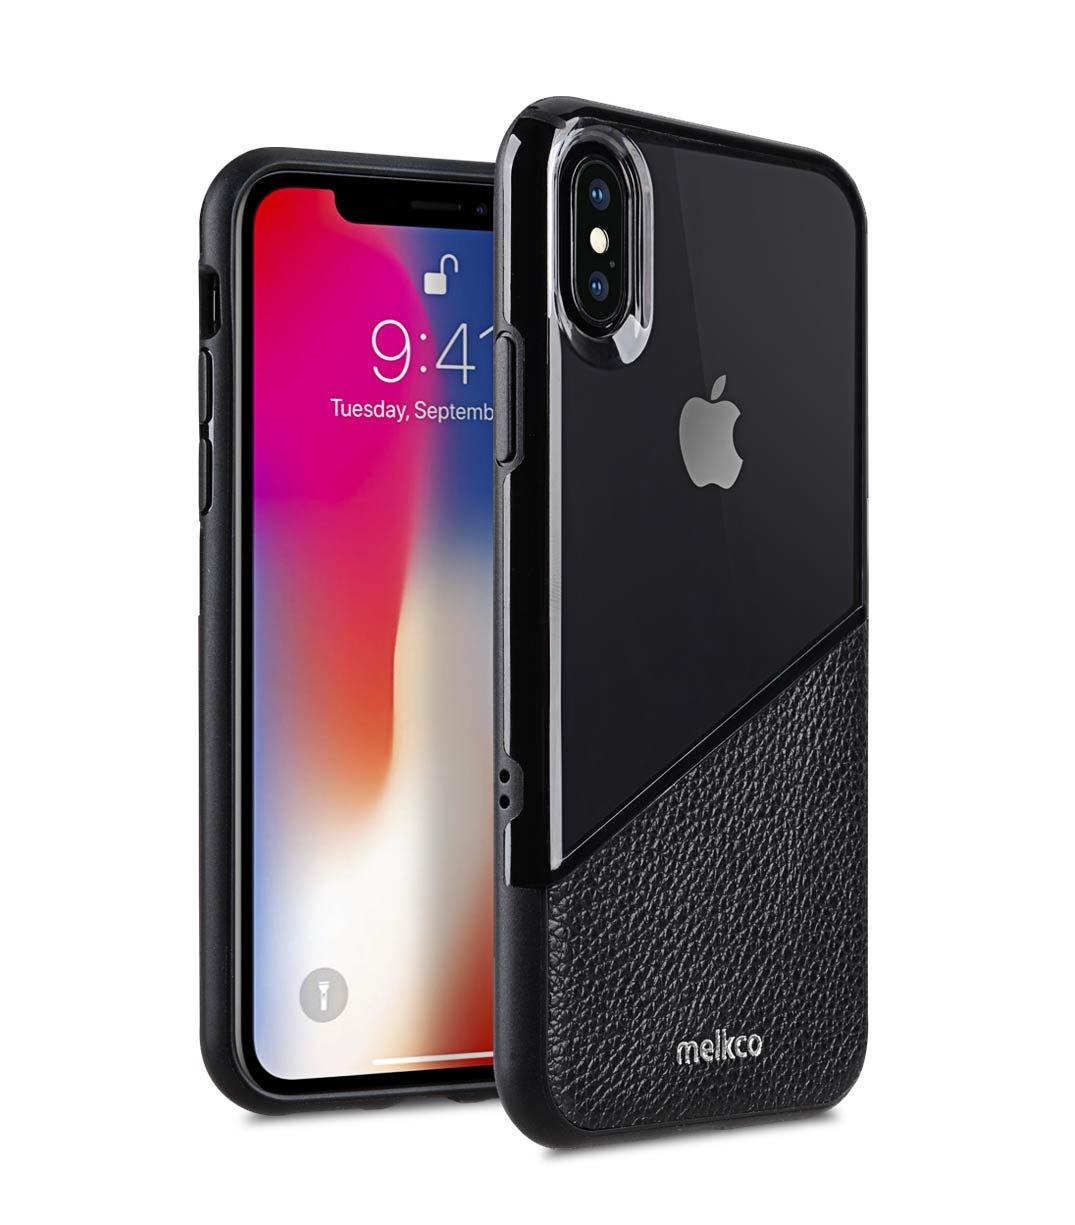 Melkco Kubalt Edelman Series Layer Apple iPhone X Support Wireless Charging Rugged Case, Shock Protection, Raised Bevel, Edge Protection, Military Grade Case - Black